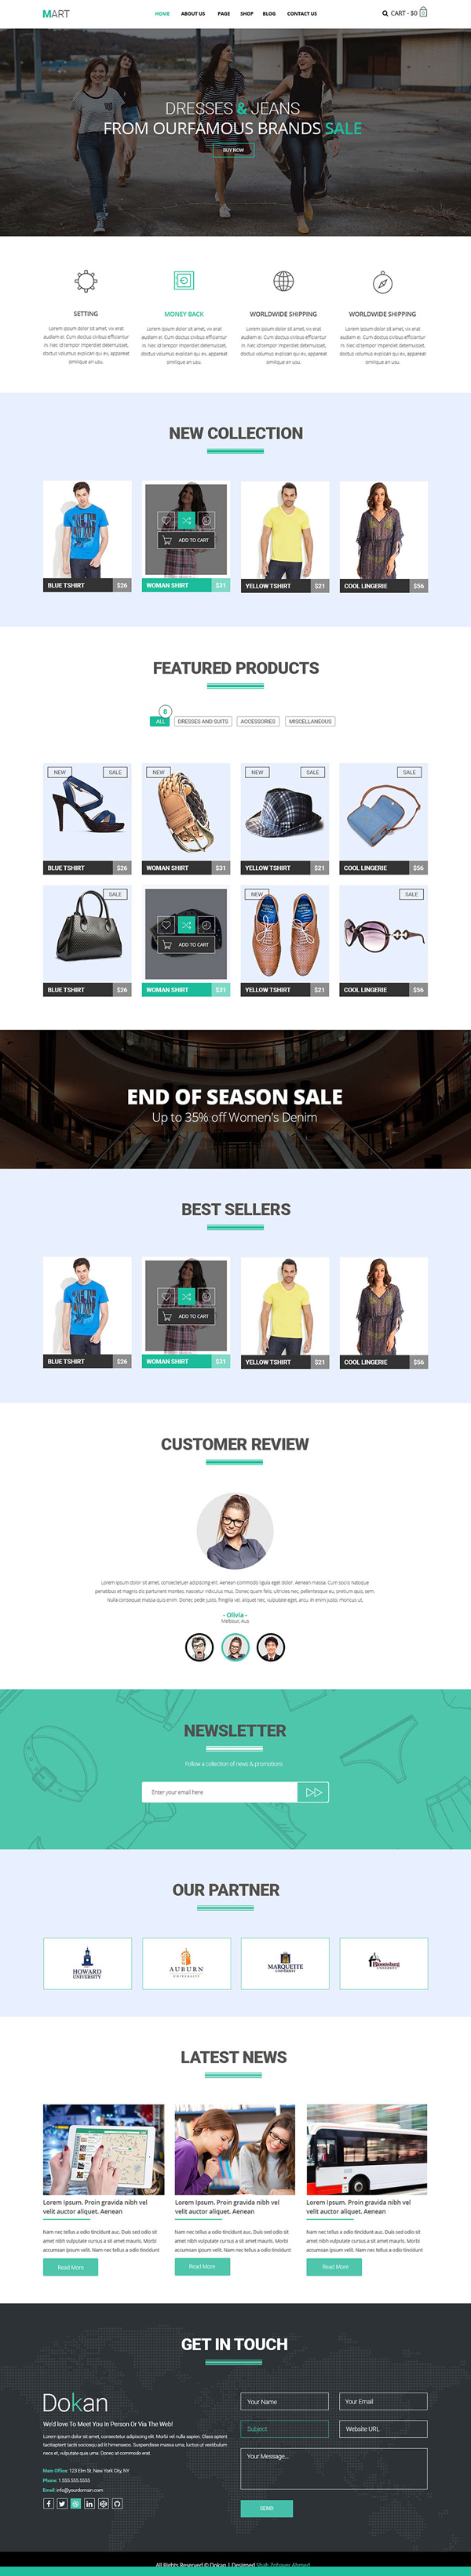 Mart - eCommerce Website Template Free PSD & HTML